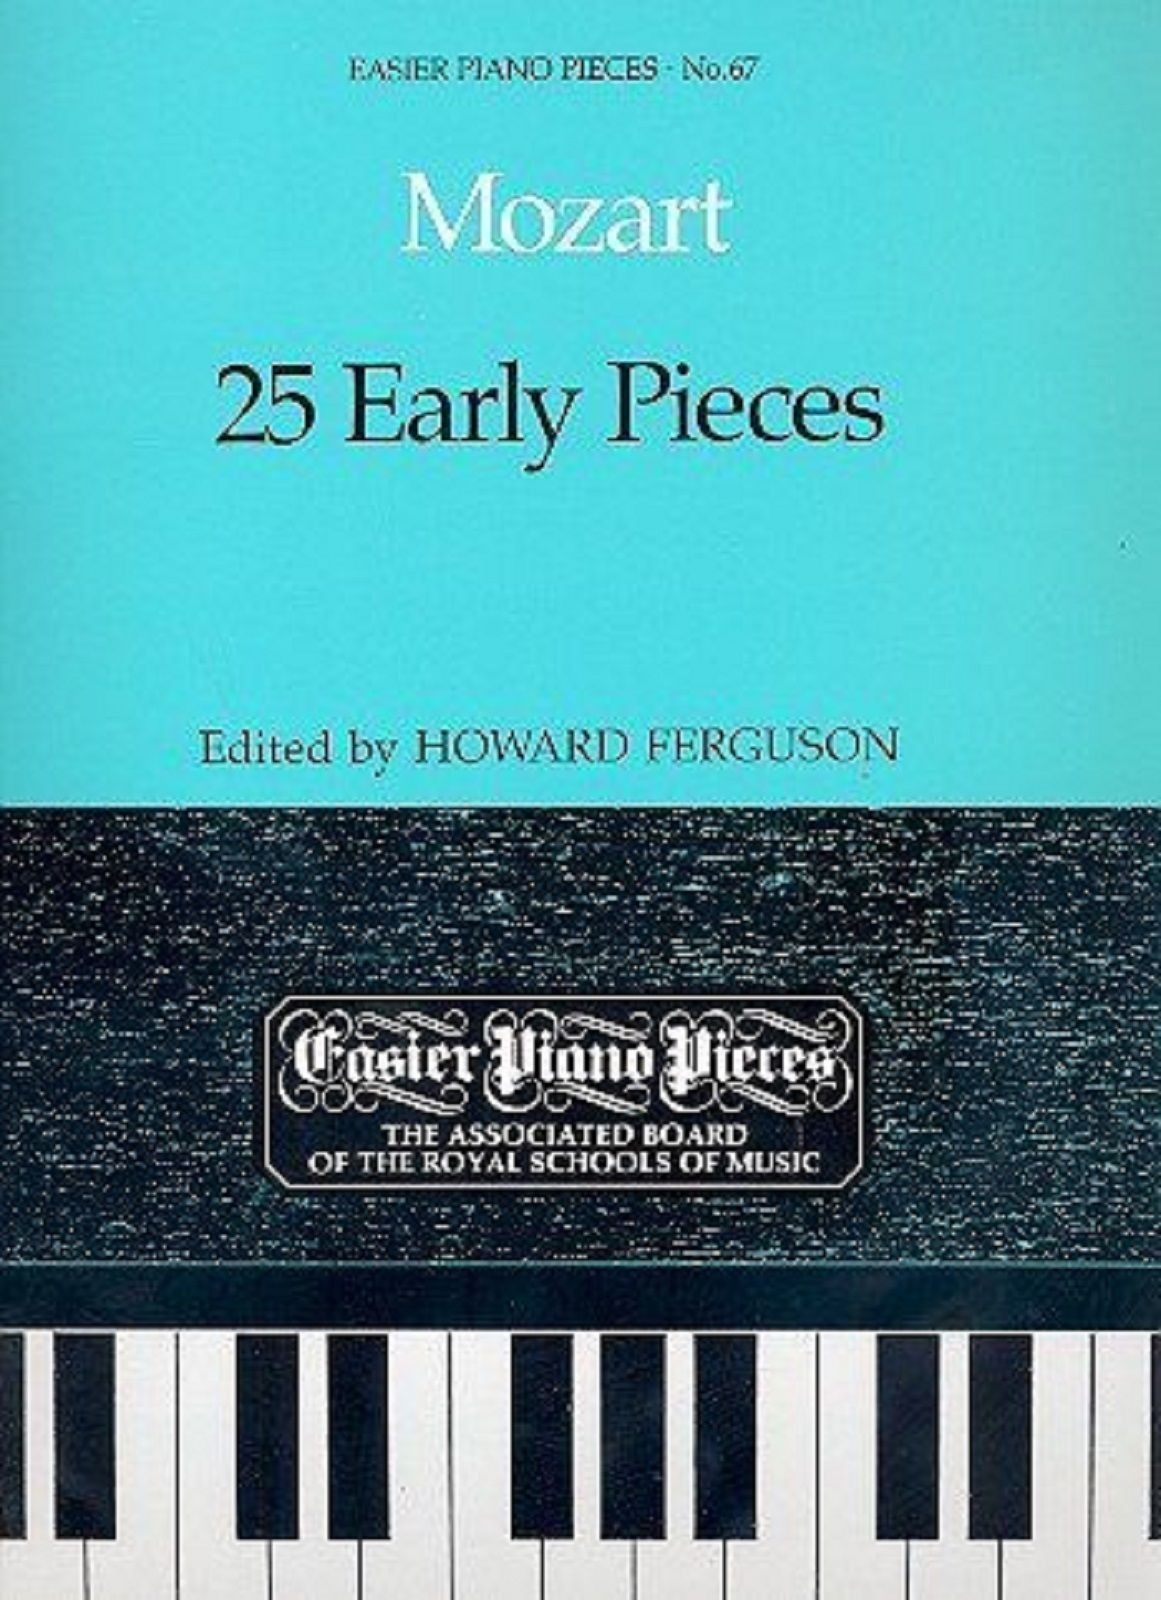 25 Early Pieces Mozart Howard Ferguson Easy Piano Solos No. 67 ABRSM Book S110